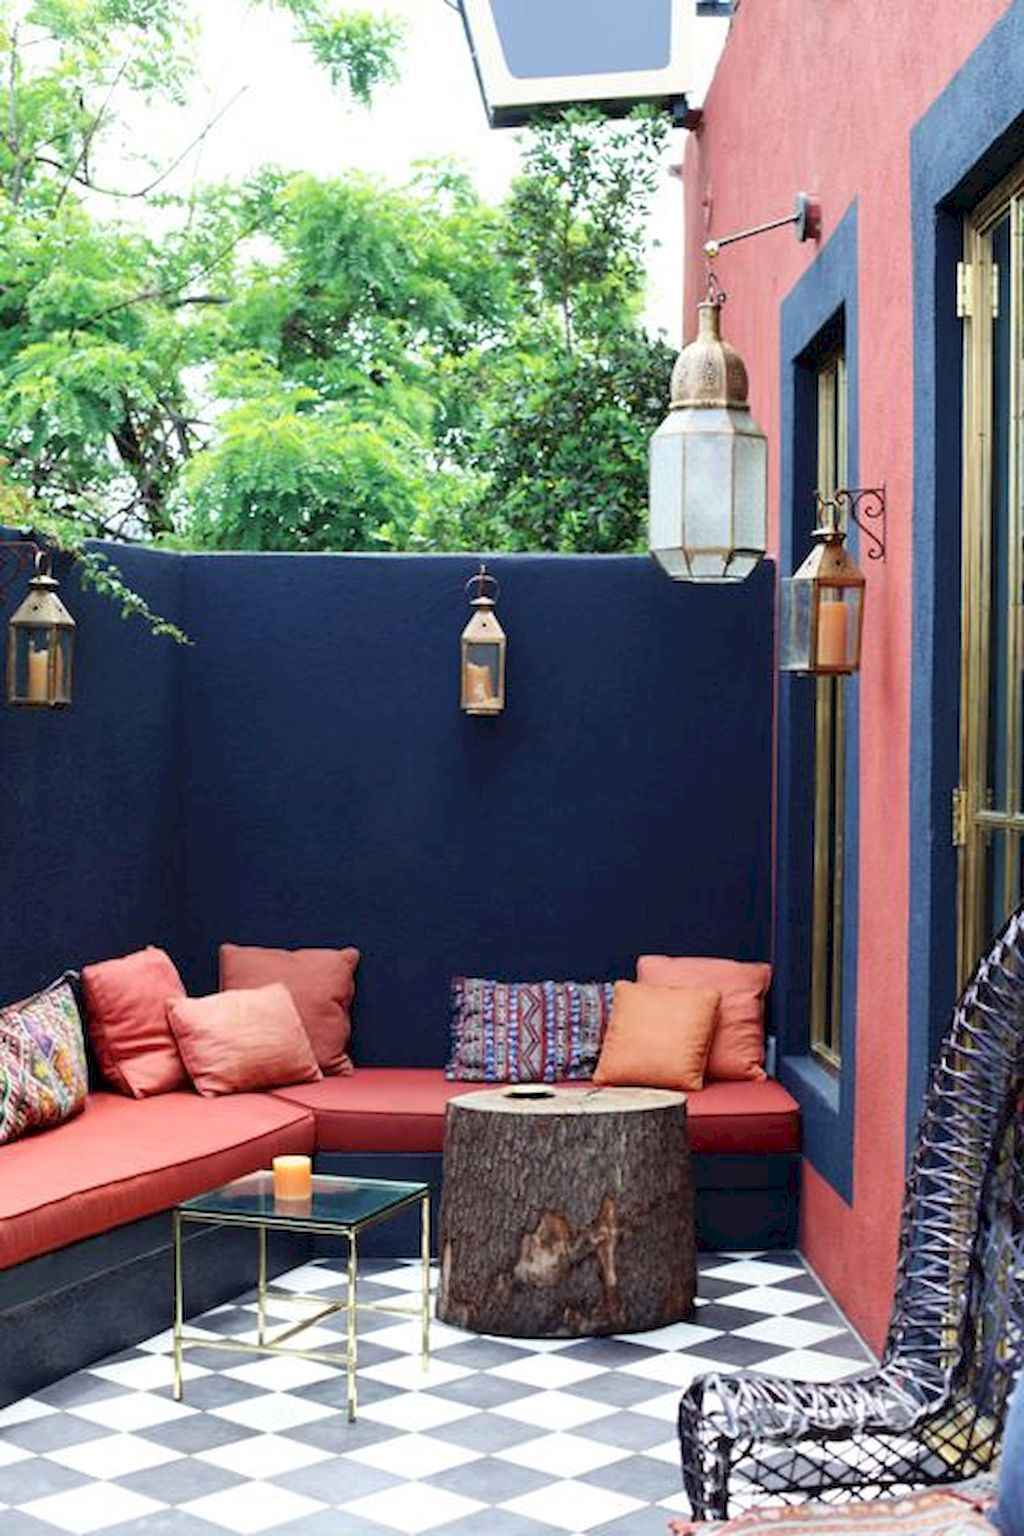 Small backyard landscaping ideas on a budget (29)